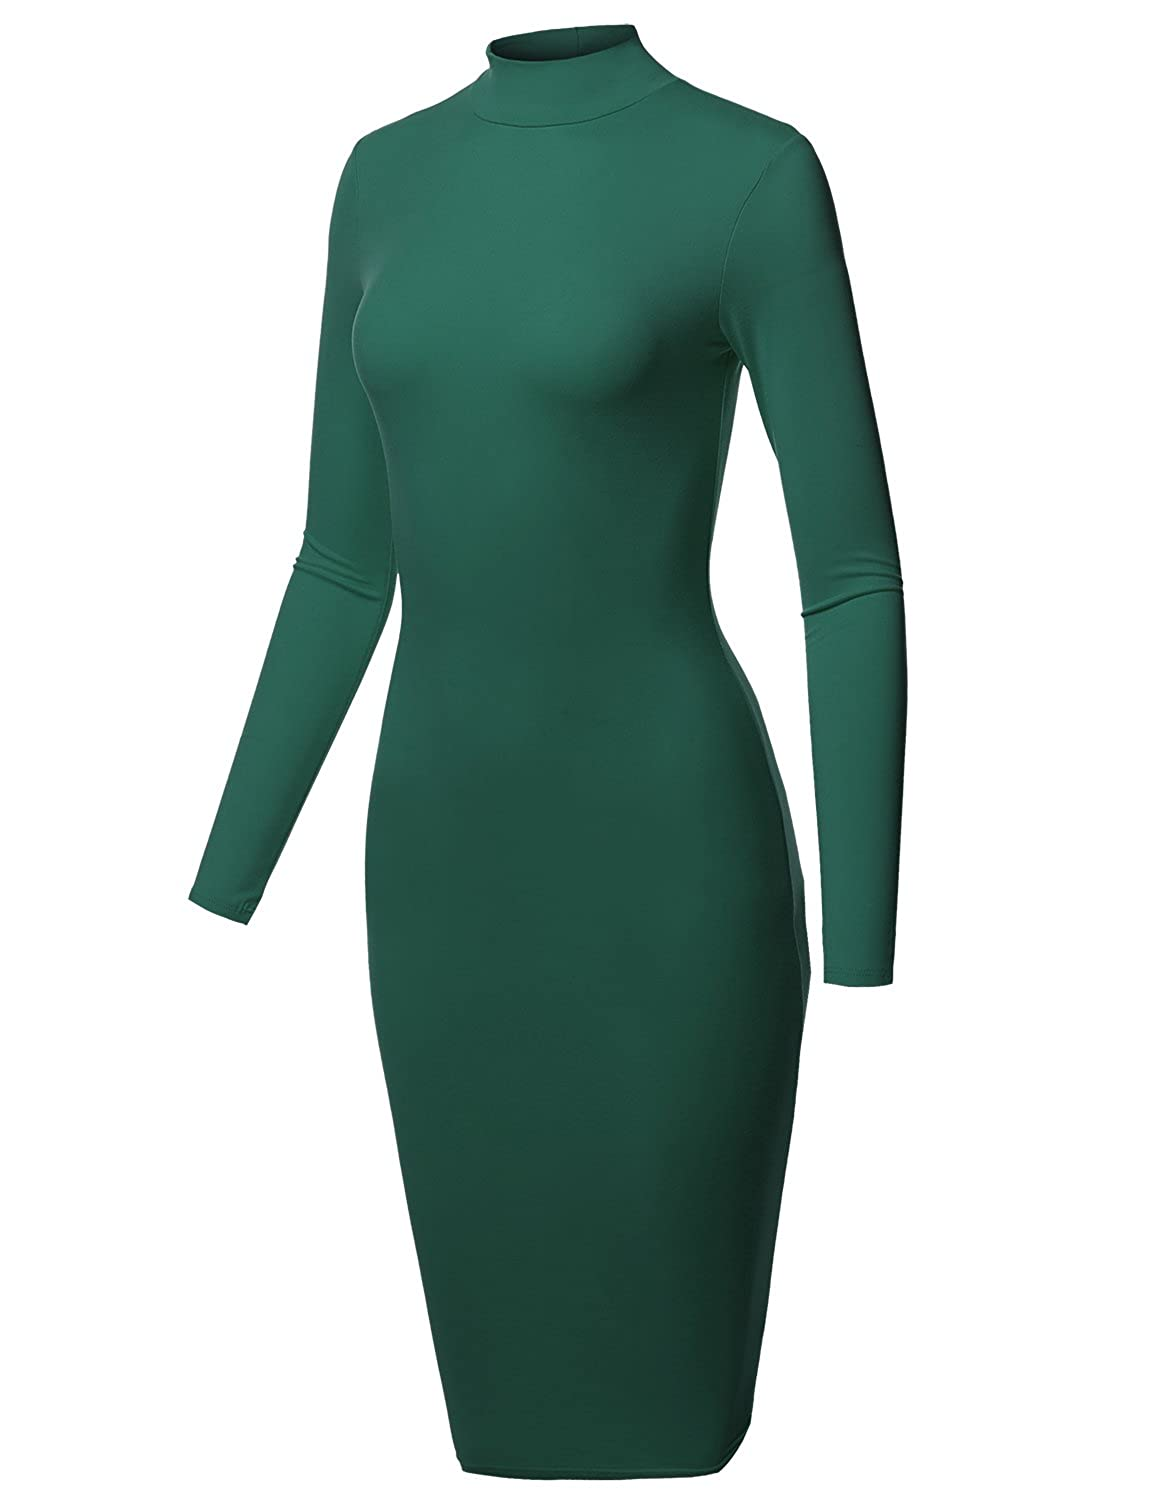 Aawdrm0003 Hunter Green Awesome21 Women's Sexy Long Sleeves High Neck Mini BodyCon Dress  Made in USA